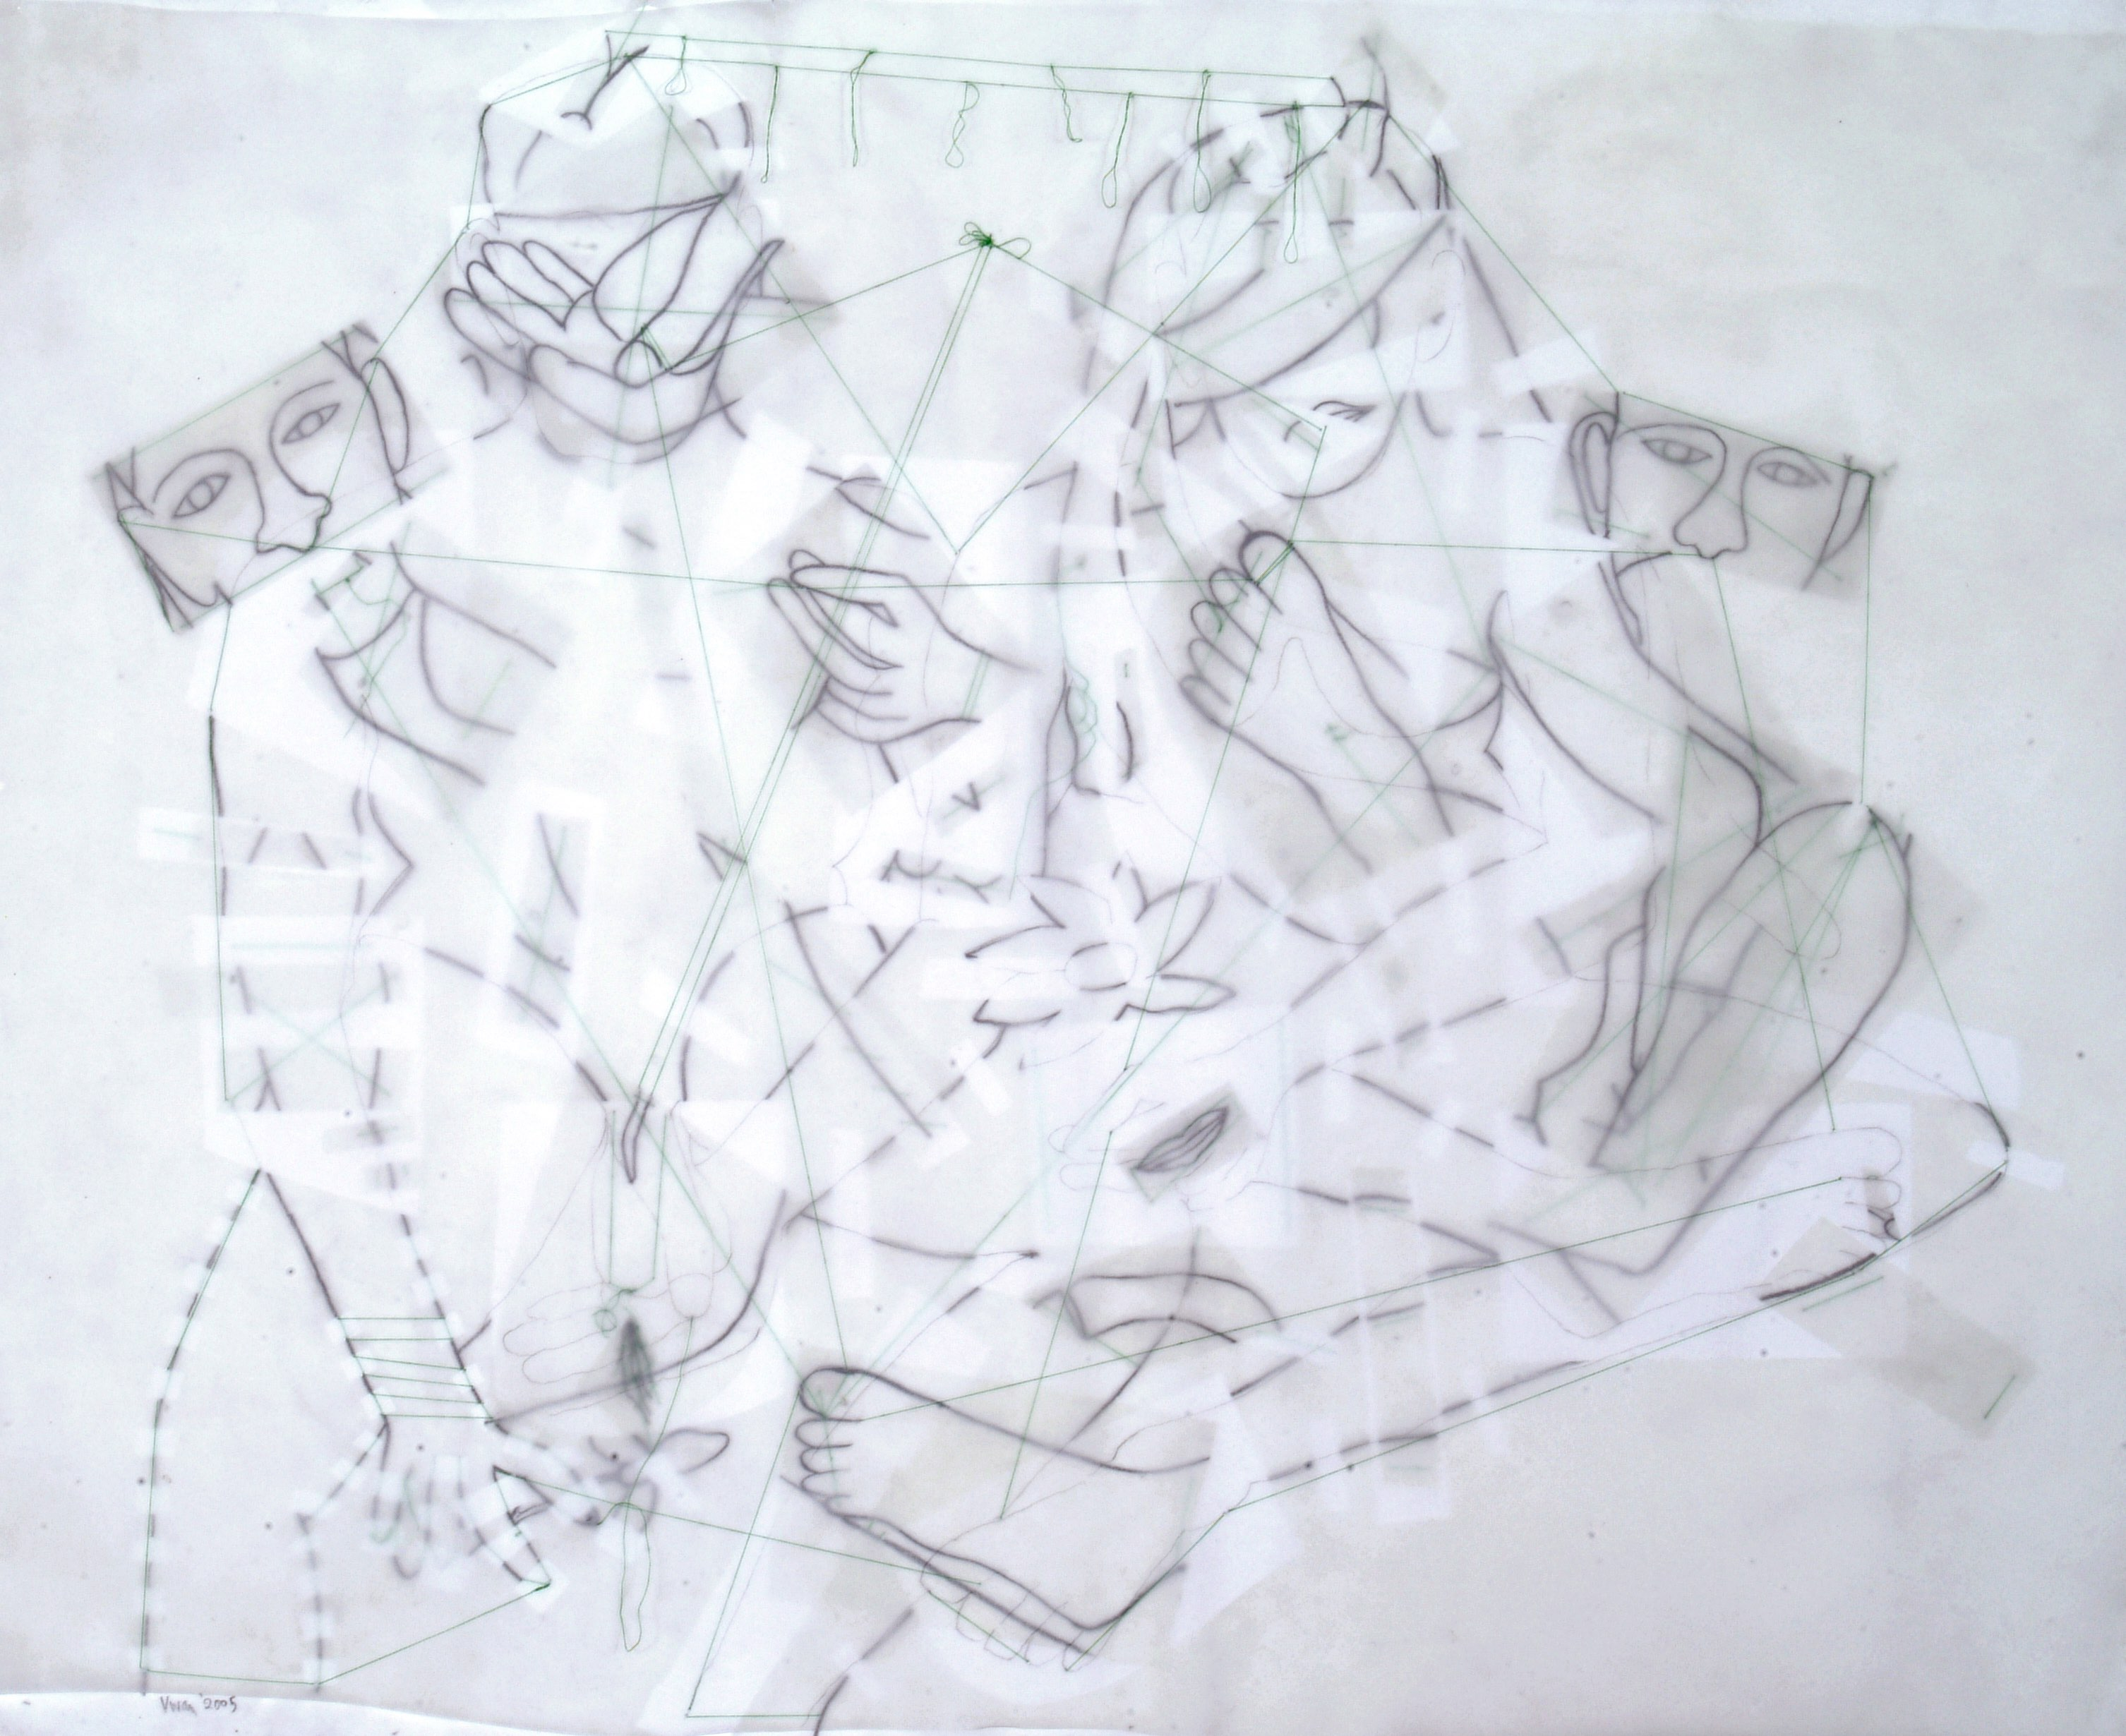 'Wedding anniversary' (2005) from the 'Bad drawings for dost' series; pencil, tracing paper, thread on paper; by Vivan Sundaram. Courtesy: Vivan Sundaram